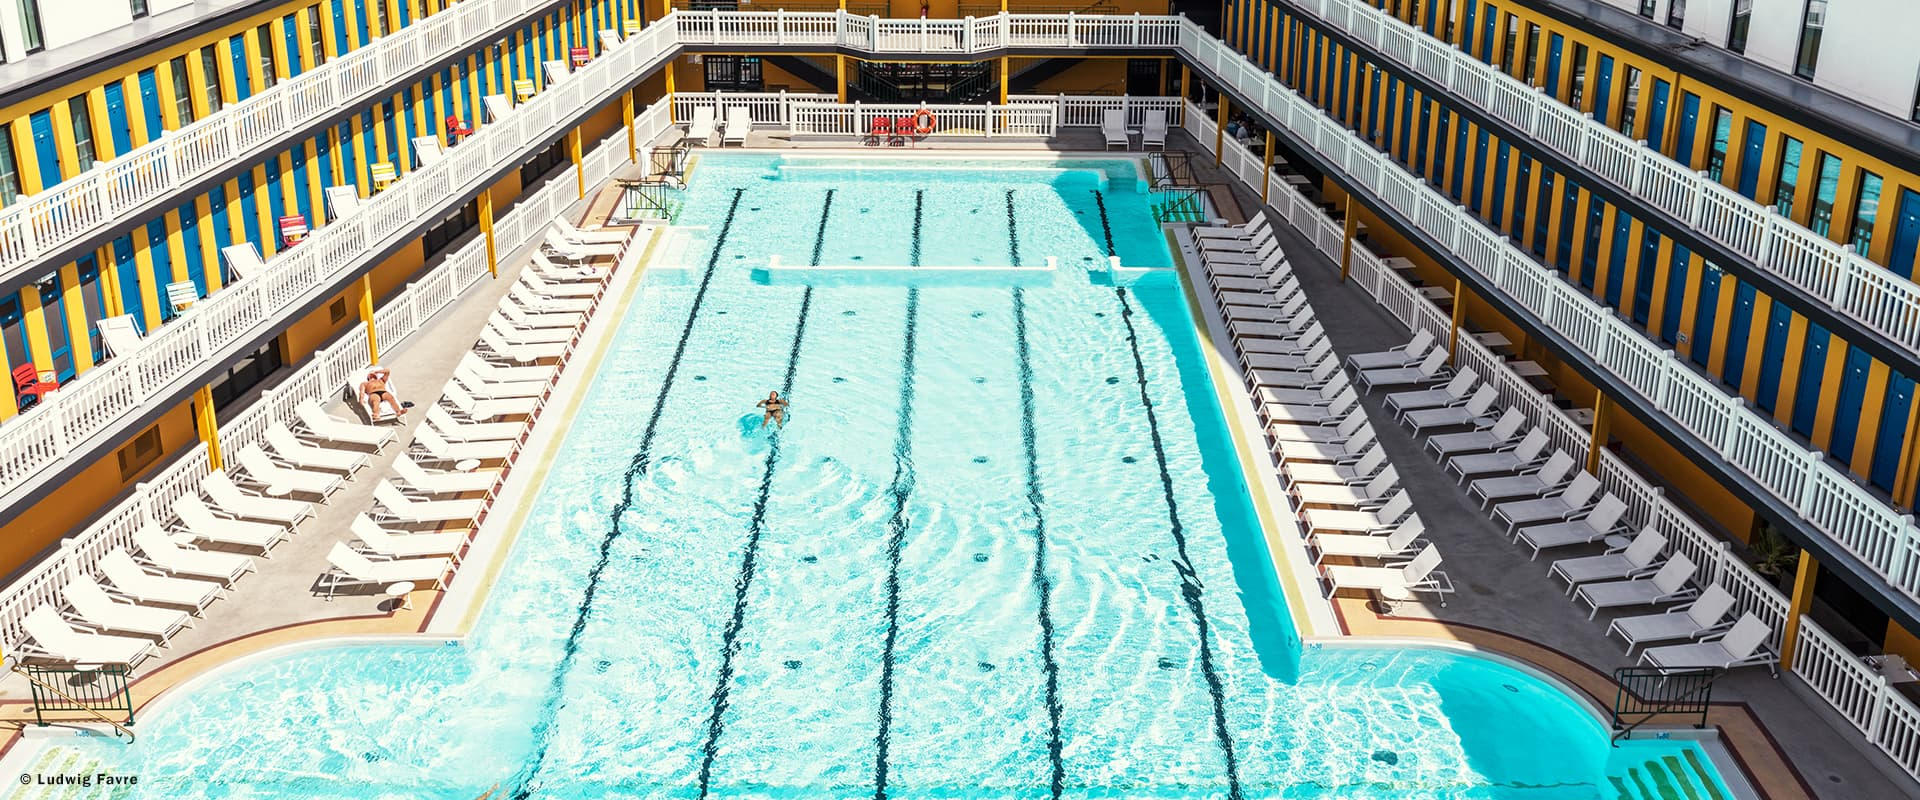 How to Pretend Your Local Public Pool is as Cool as Piscine Molitor's